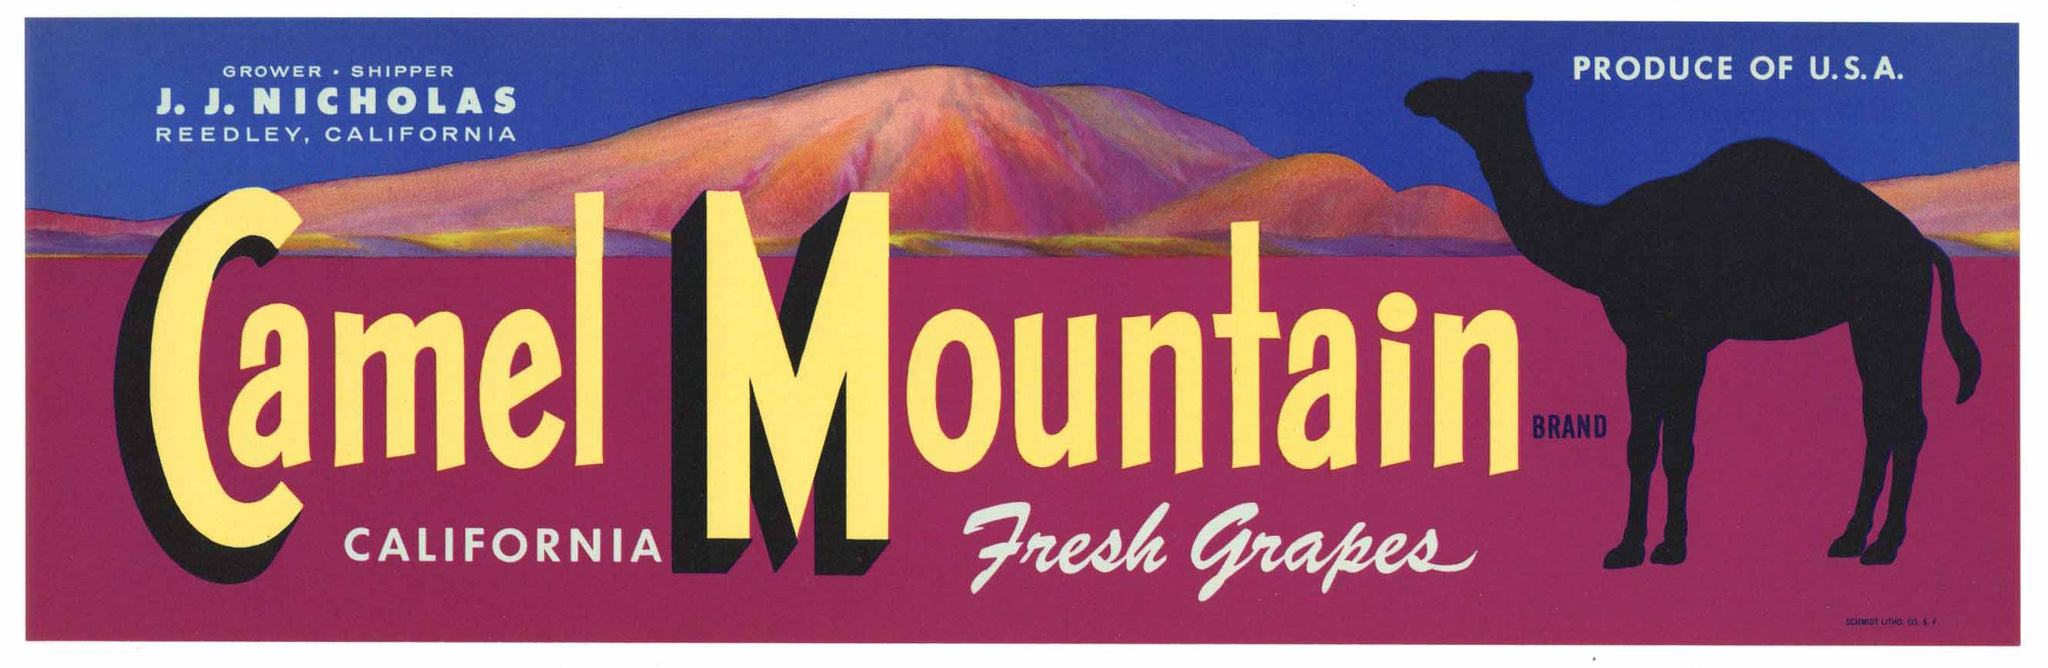 Camel Mountain Brand Vintage Reedley Grape Crate Label